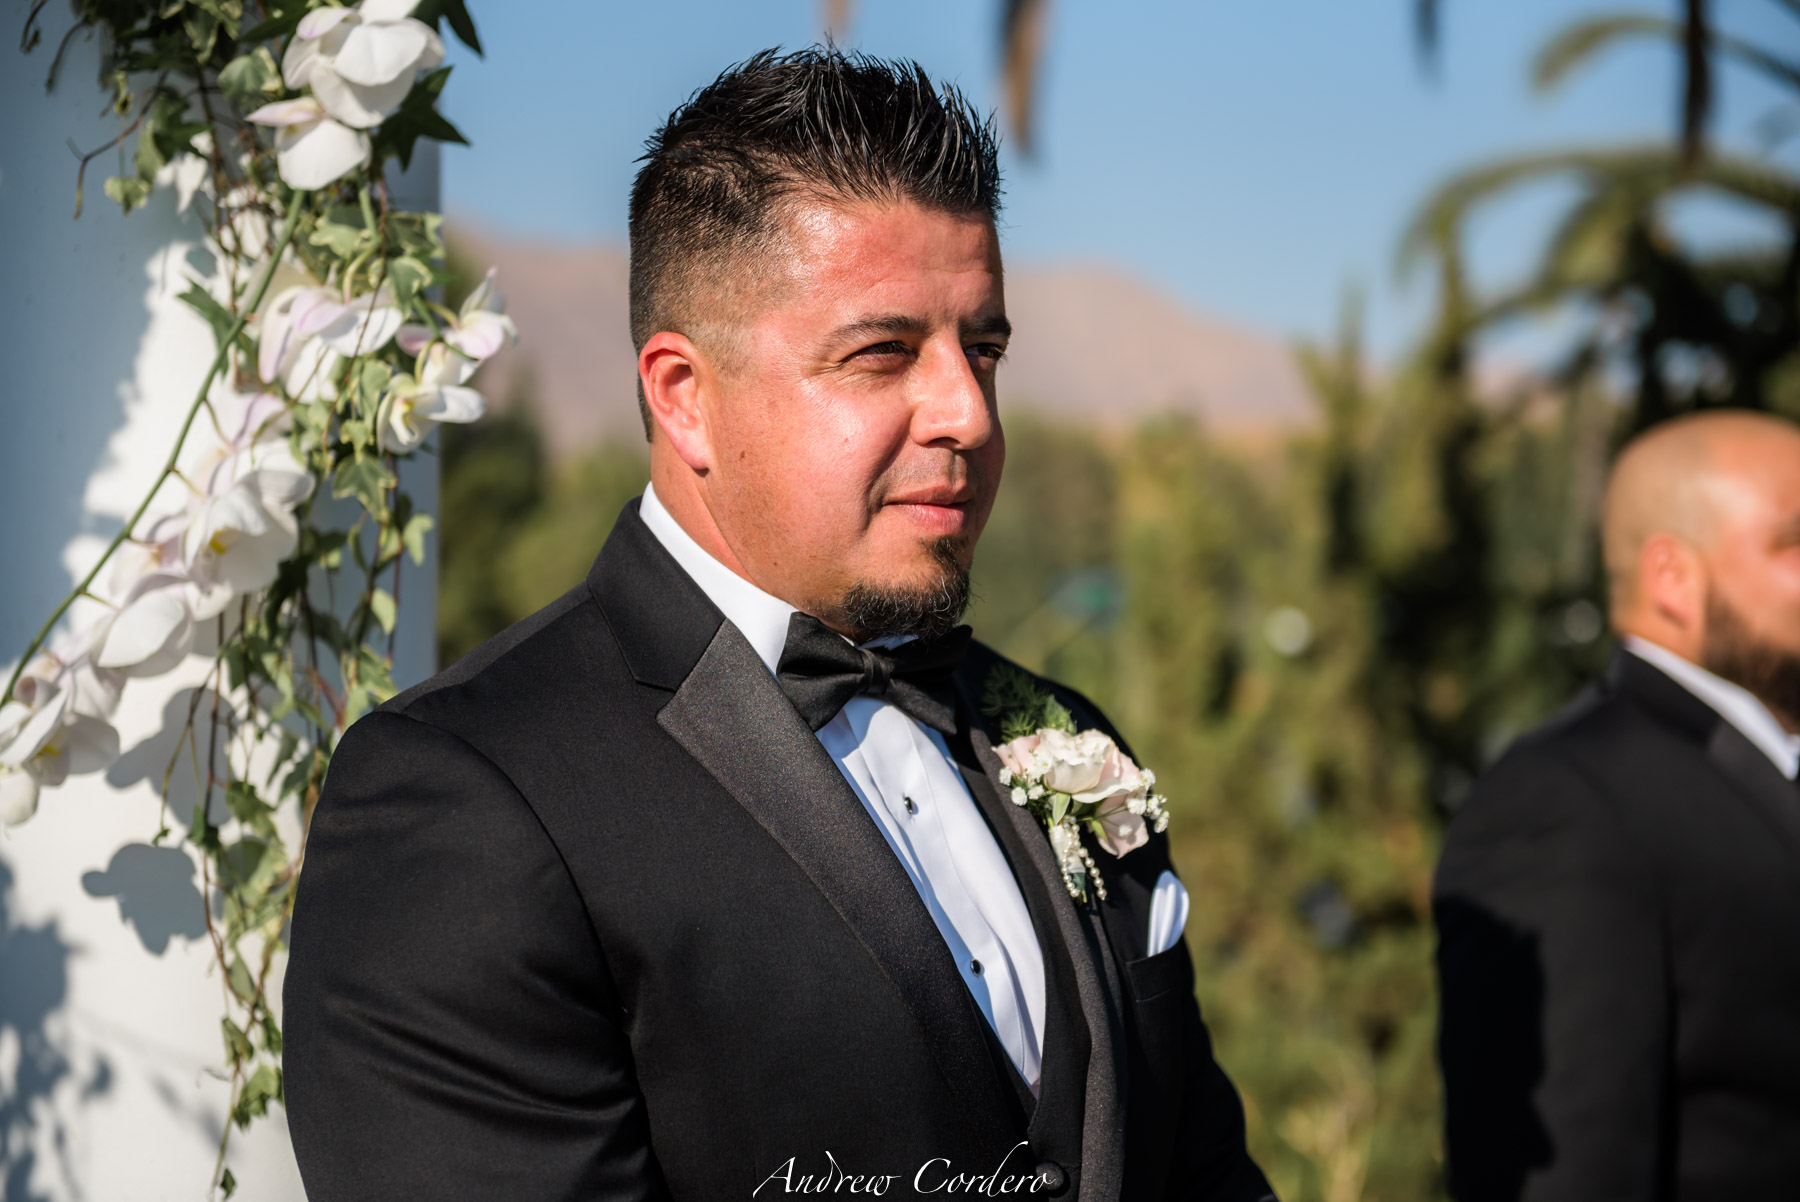 canyon-crest-country-club-riverside-wedding-jose-and-espie-4393.JPG